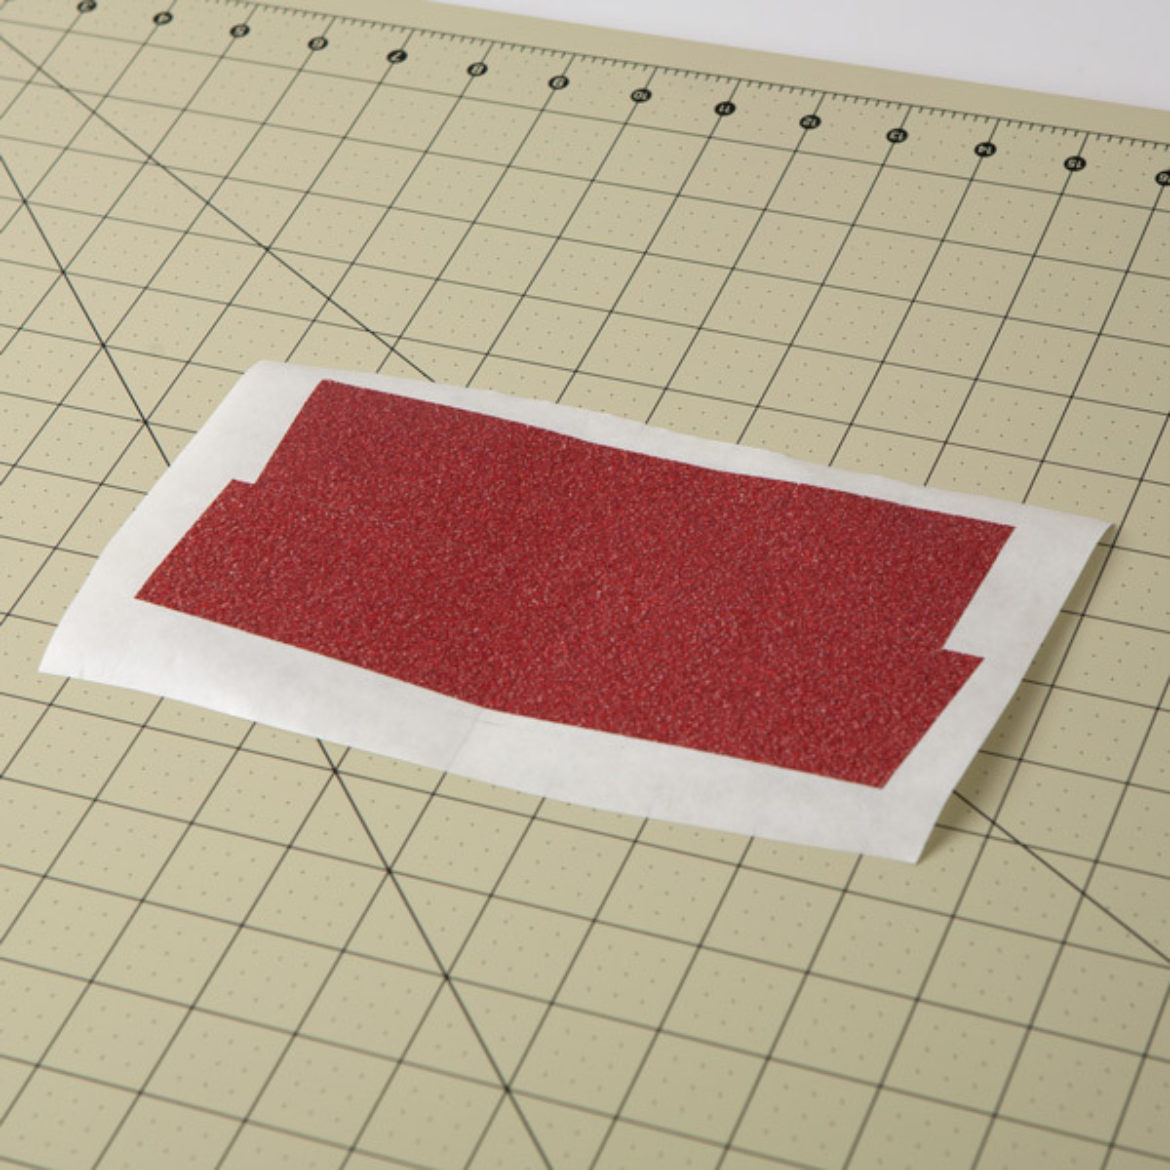 strips of Duck Glitter tape placed overlapping onto a piece of wax paper